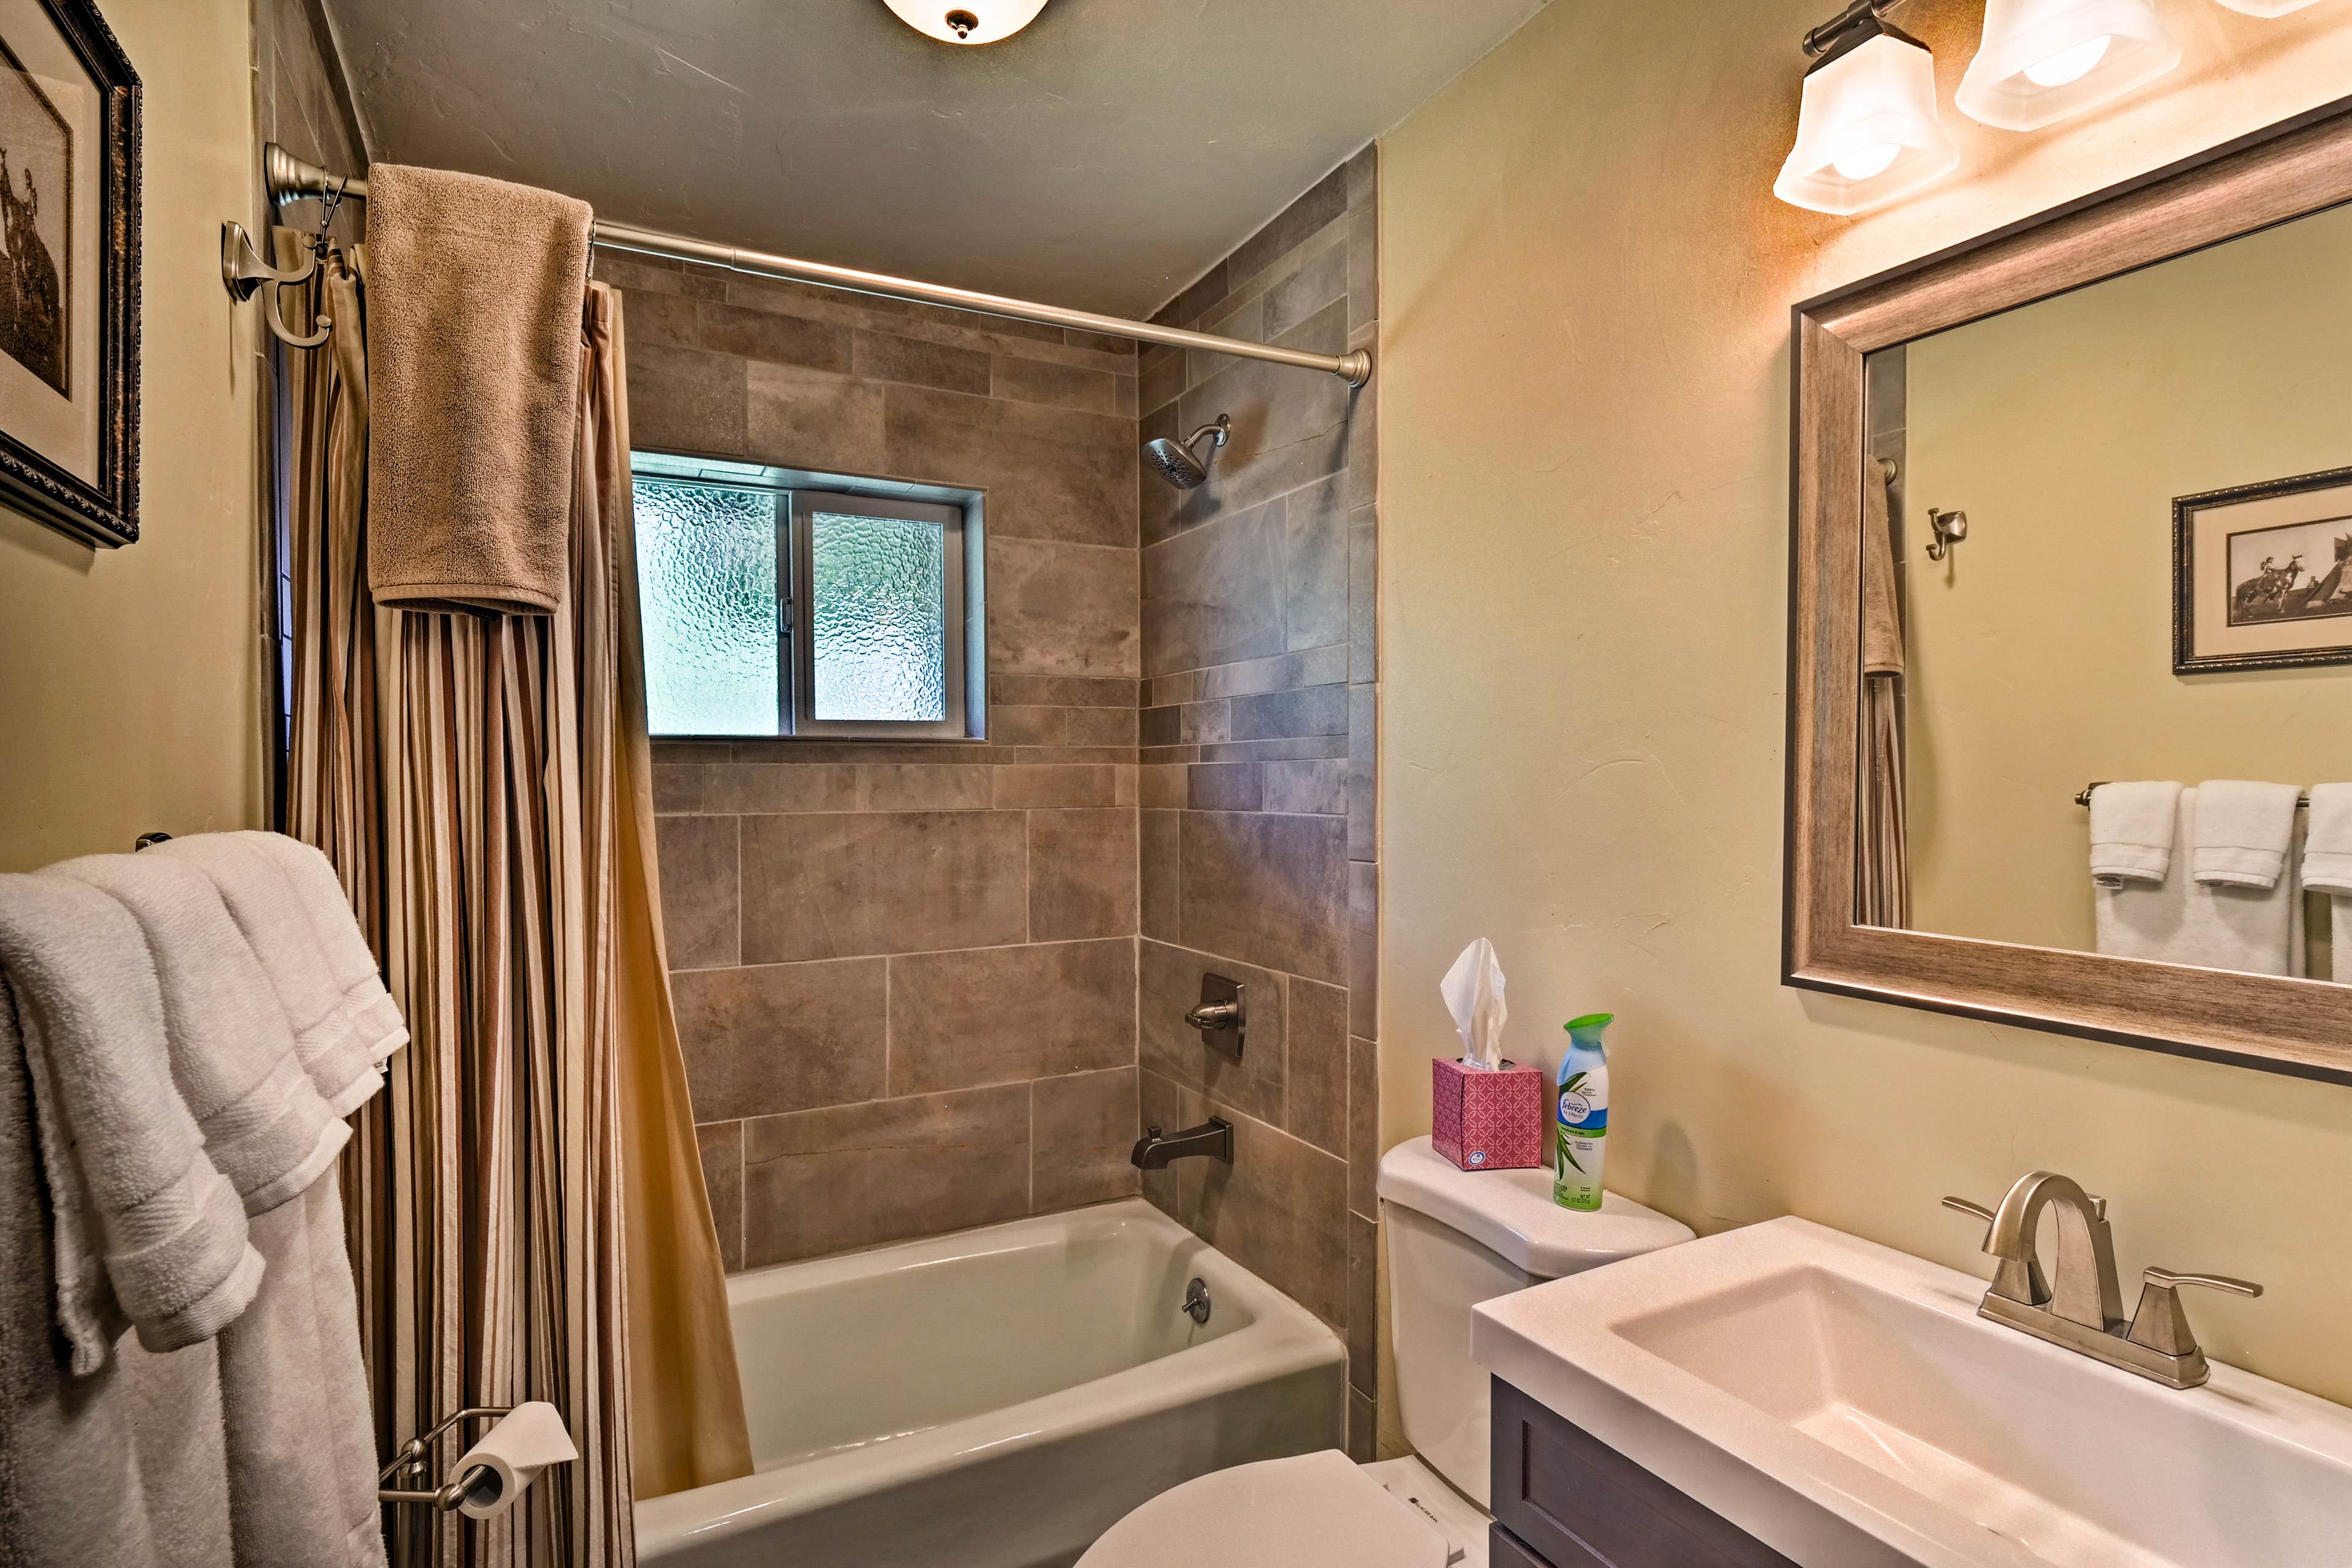 Rinse off after activities in the mountains in this tiled shower/tub combo.